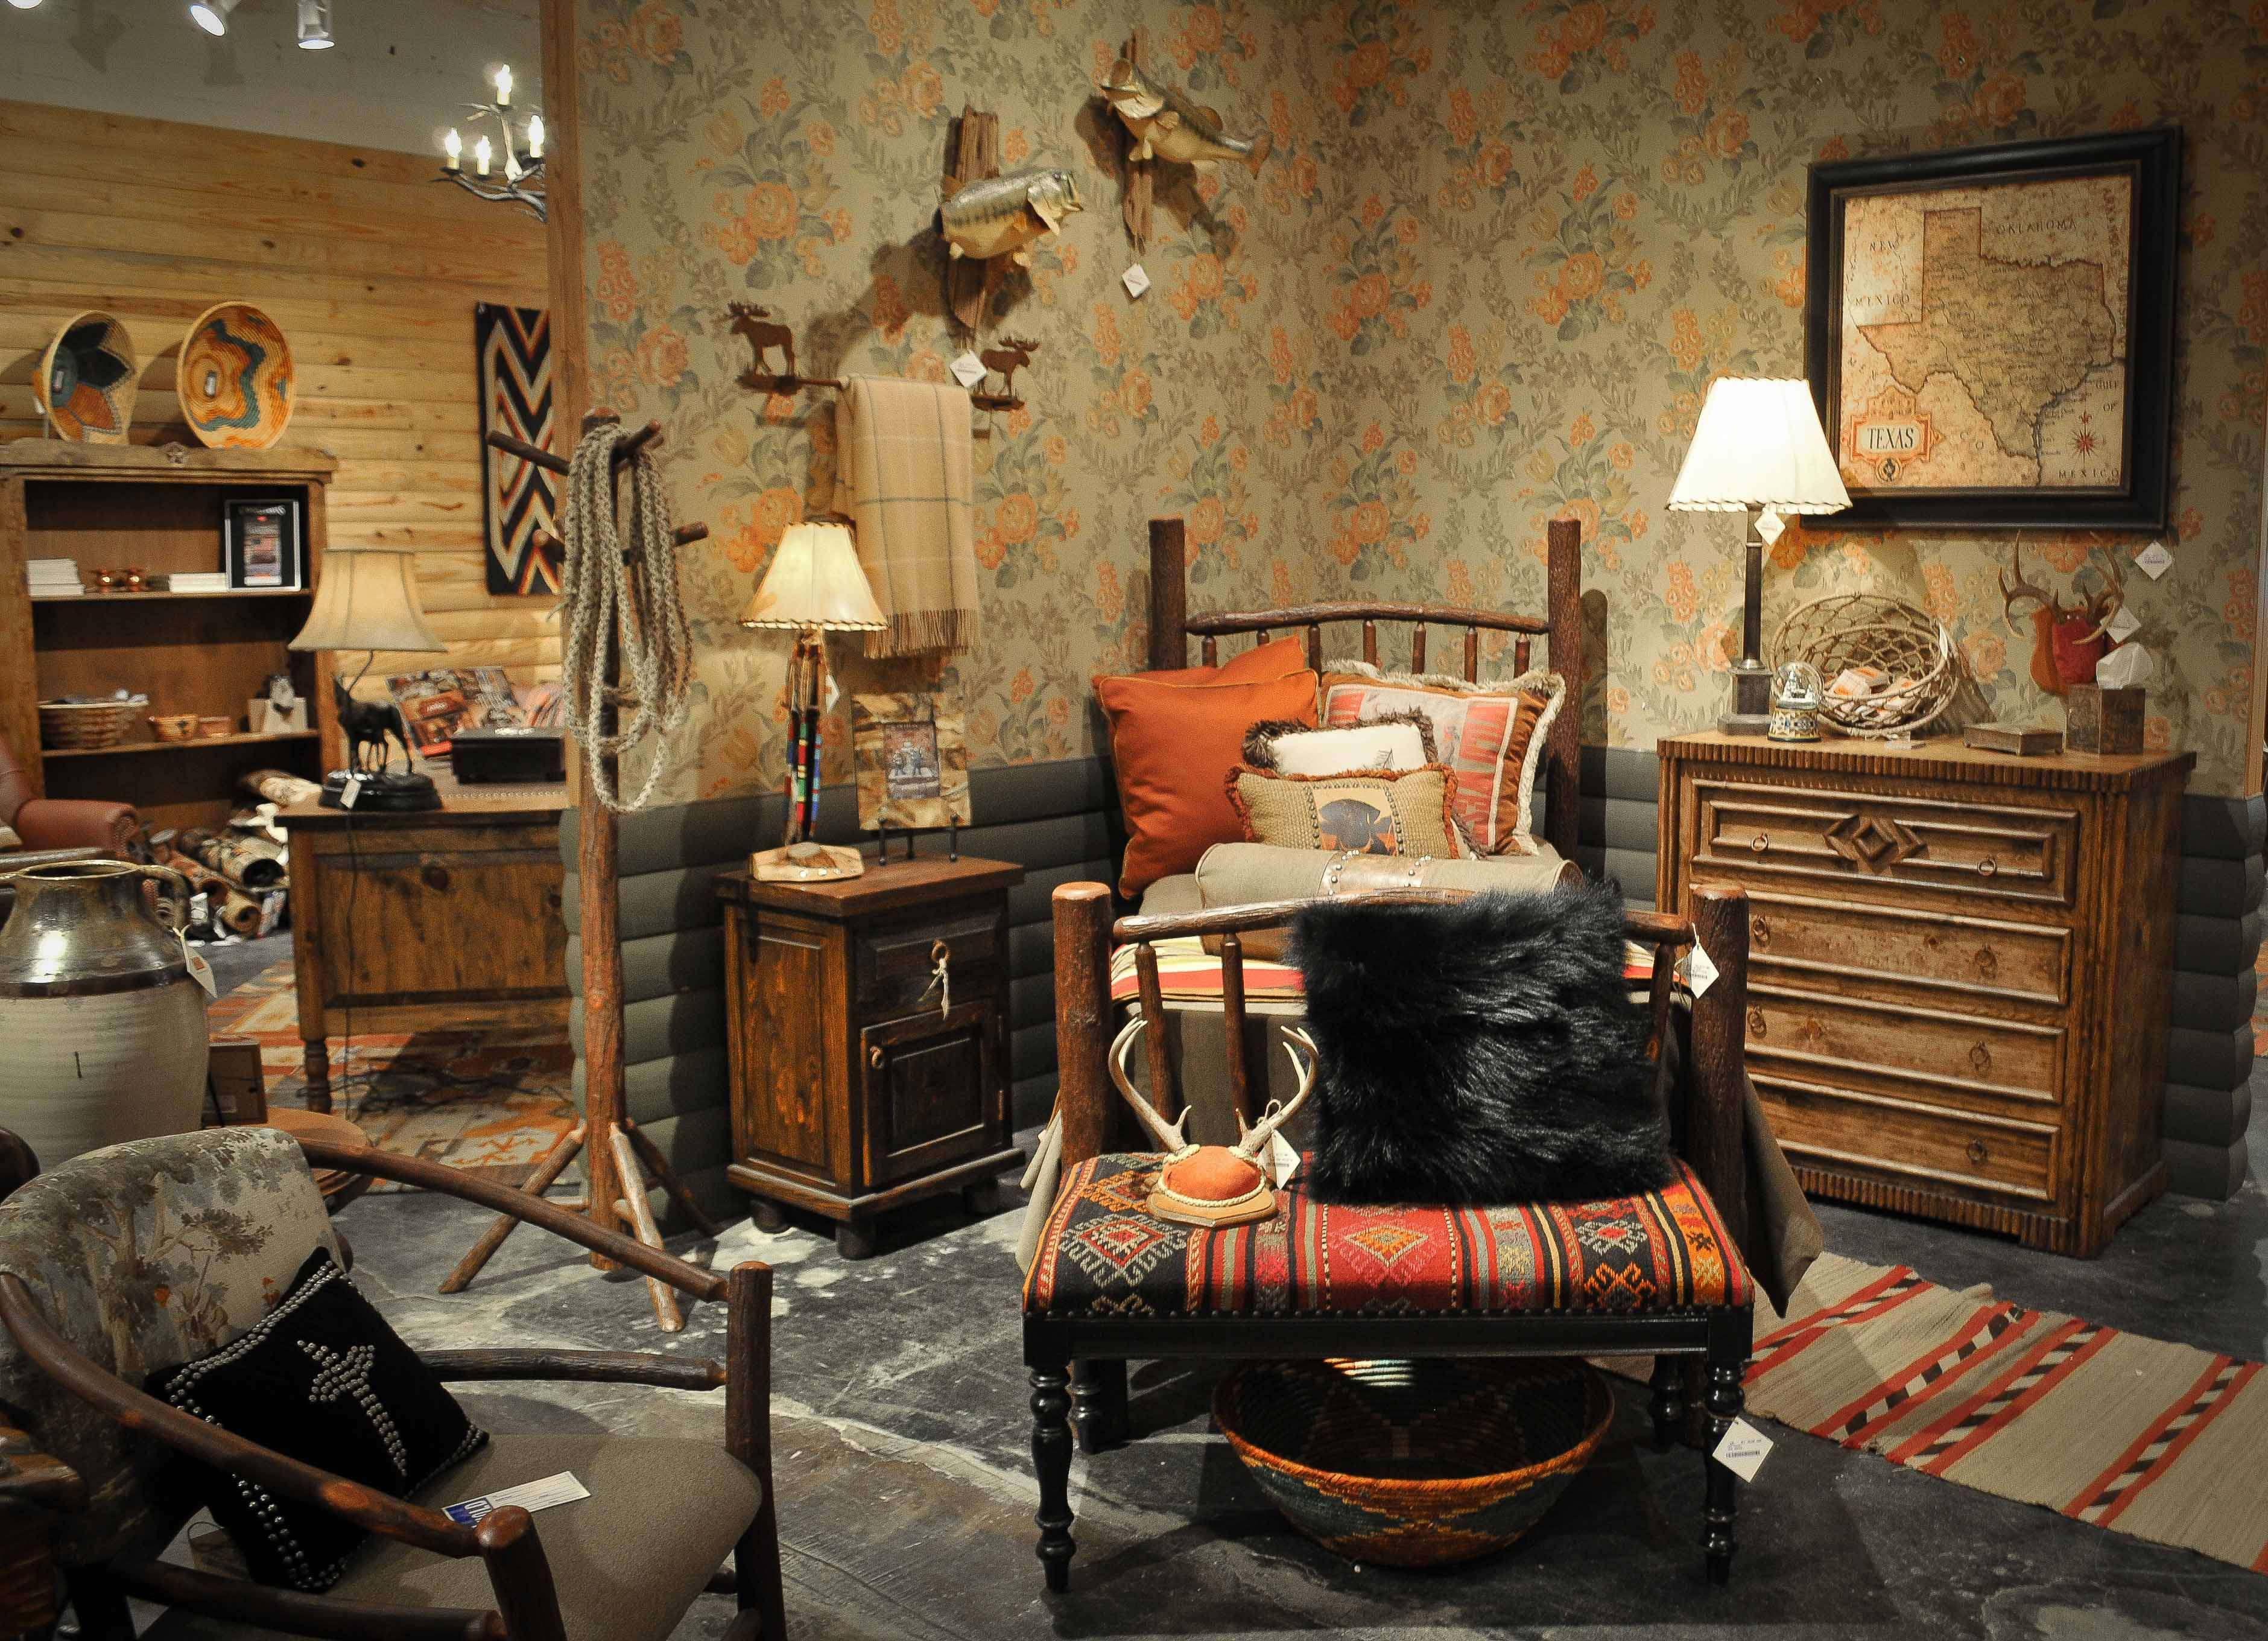 Rustic Bedroom Furniture At Anteks Furniture Store In Dallas